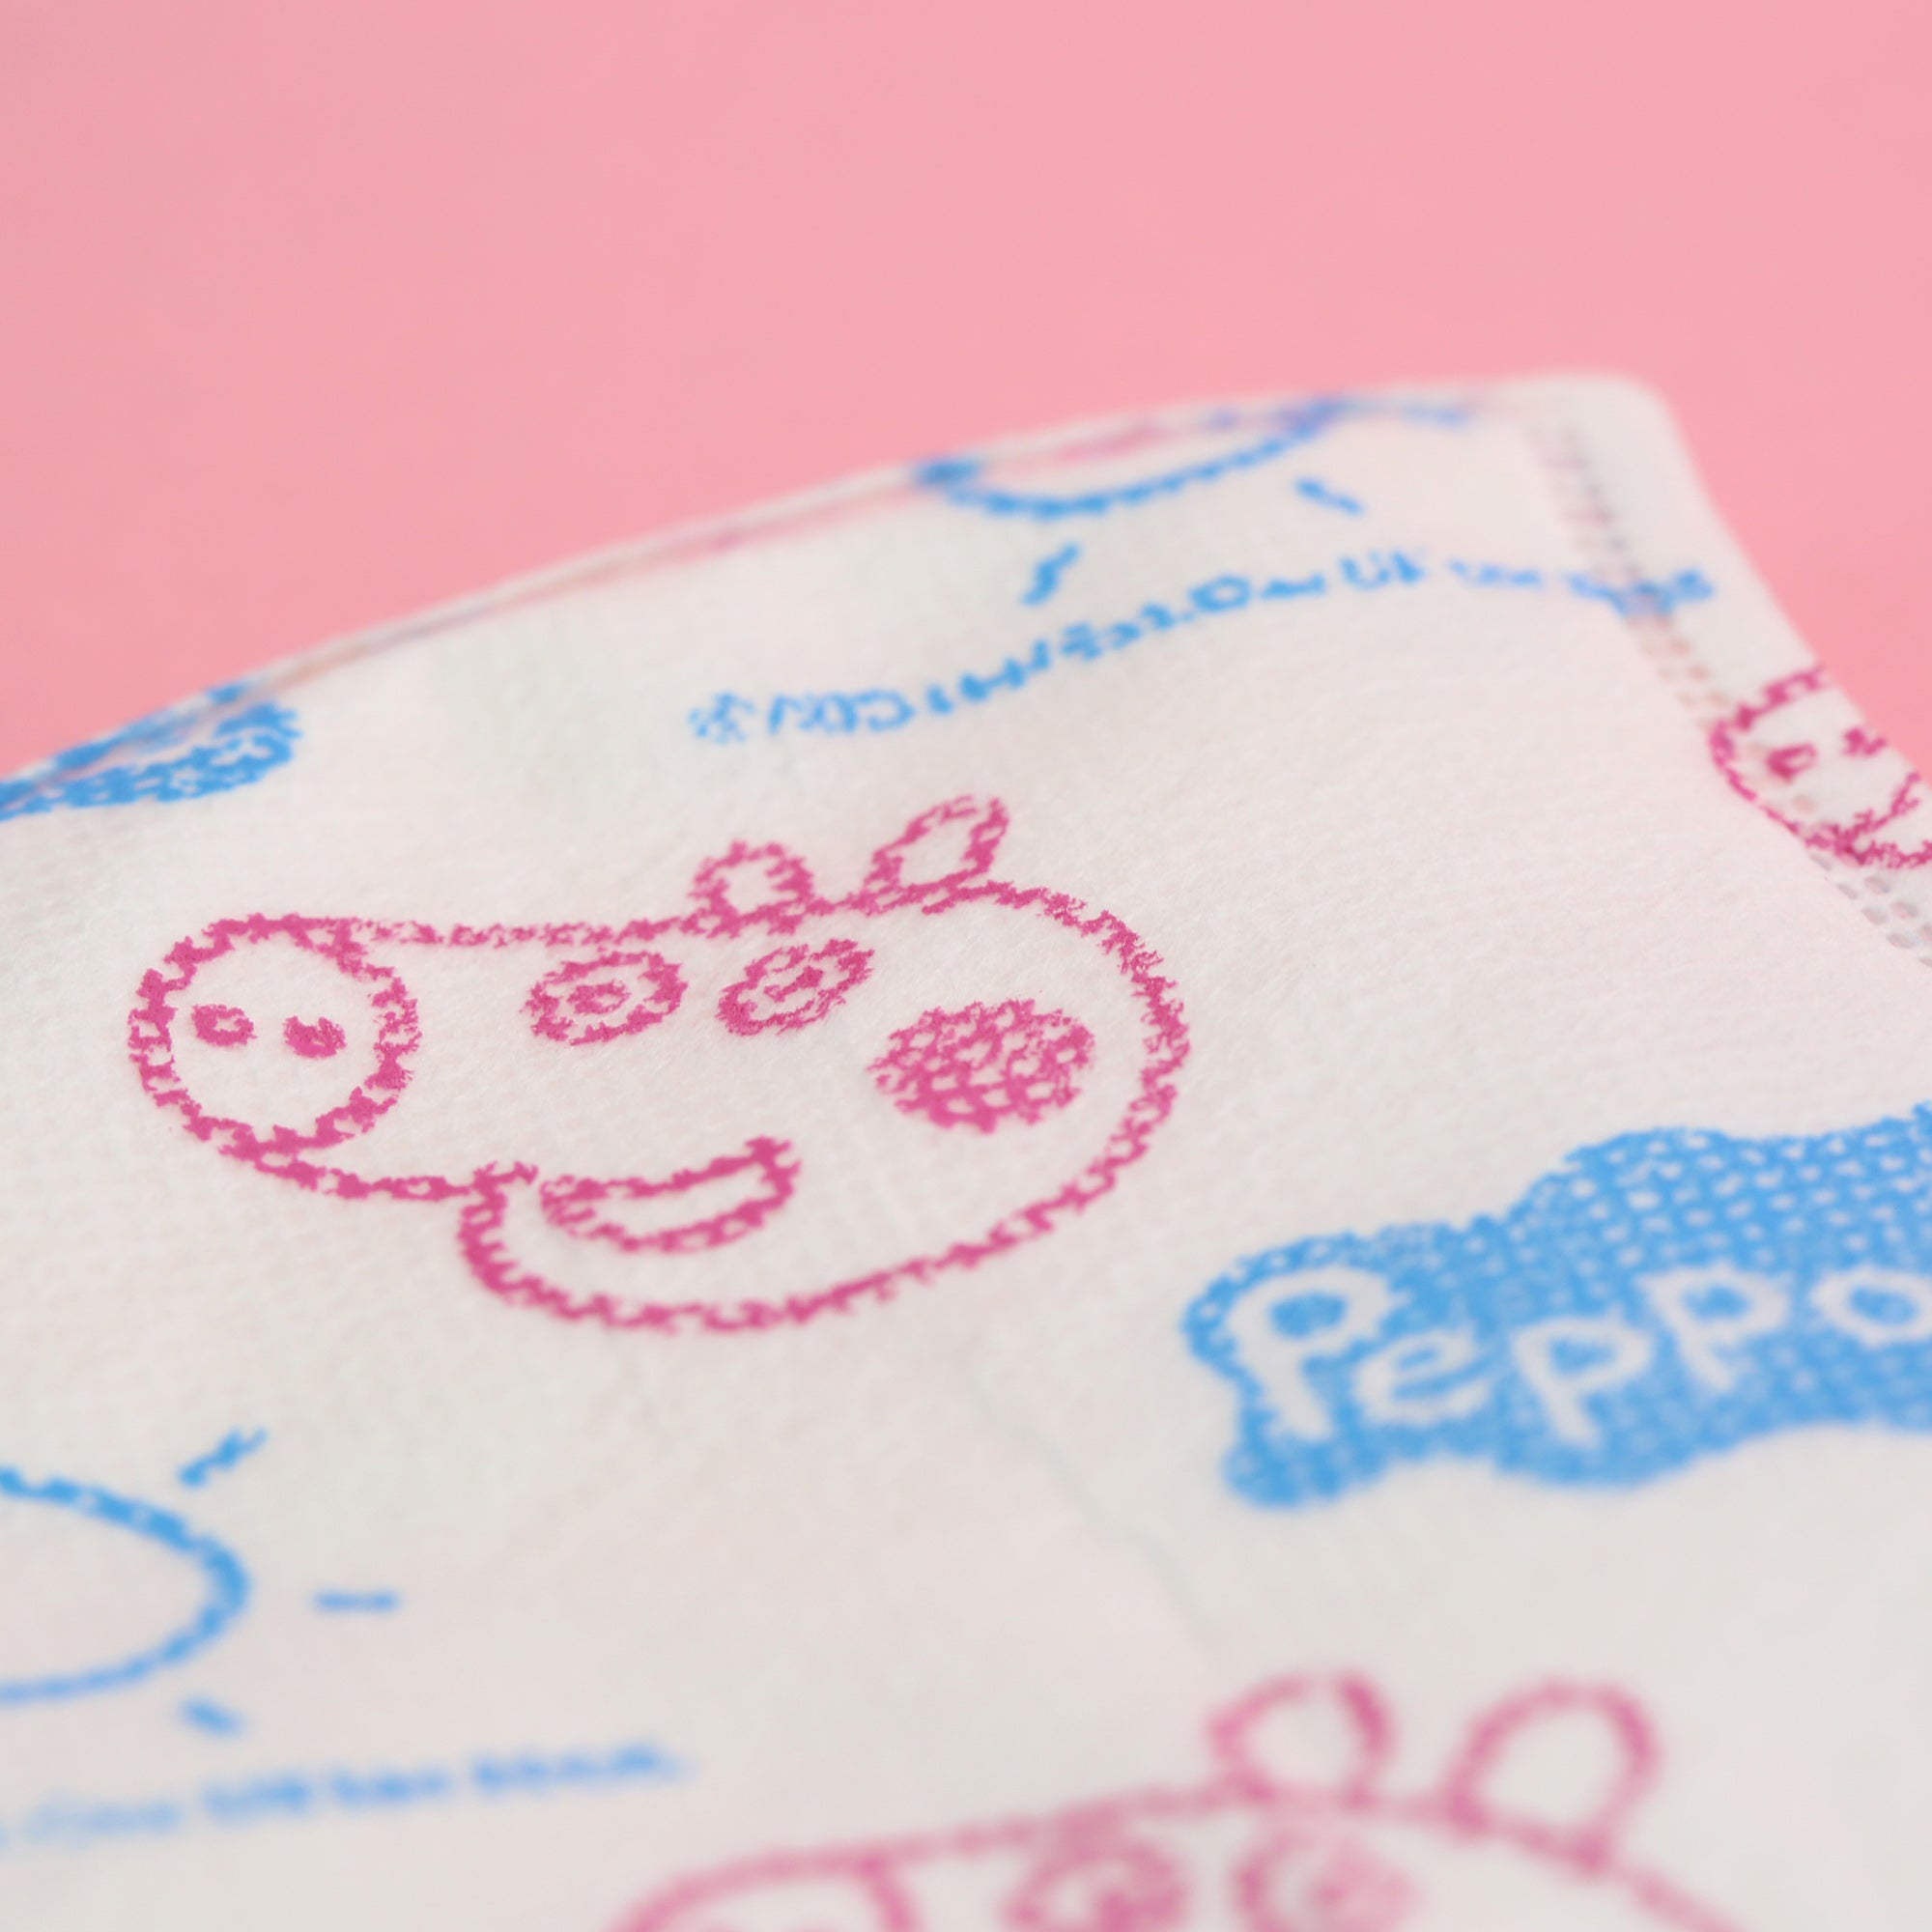 【台灣製】 Peppa Pig SDC™ 3D立體兒童裝(30片)| Peppa Pig SDC™ 3D Masks for Kid (30 pcs). Made in Taiwan